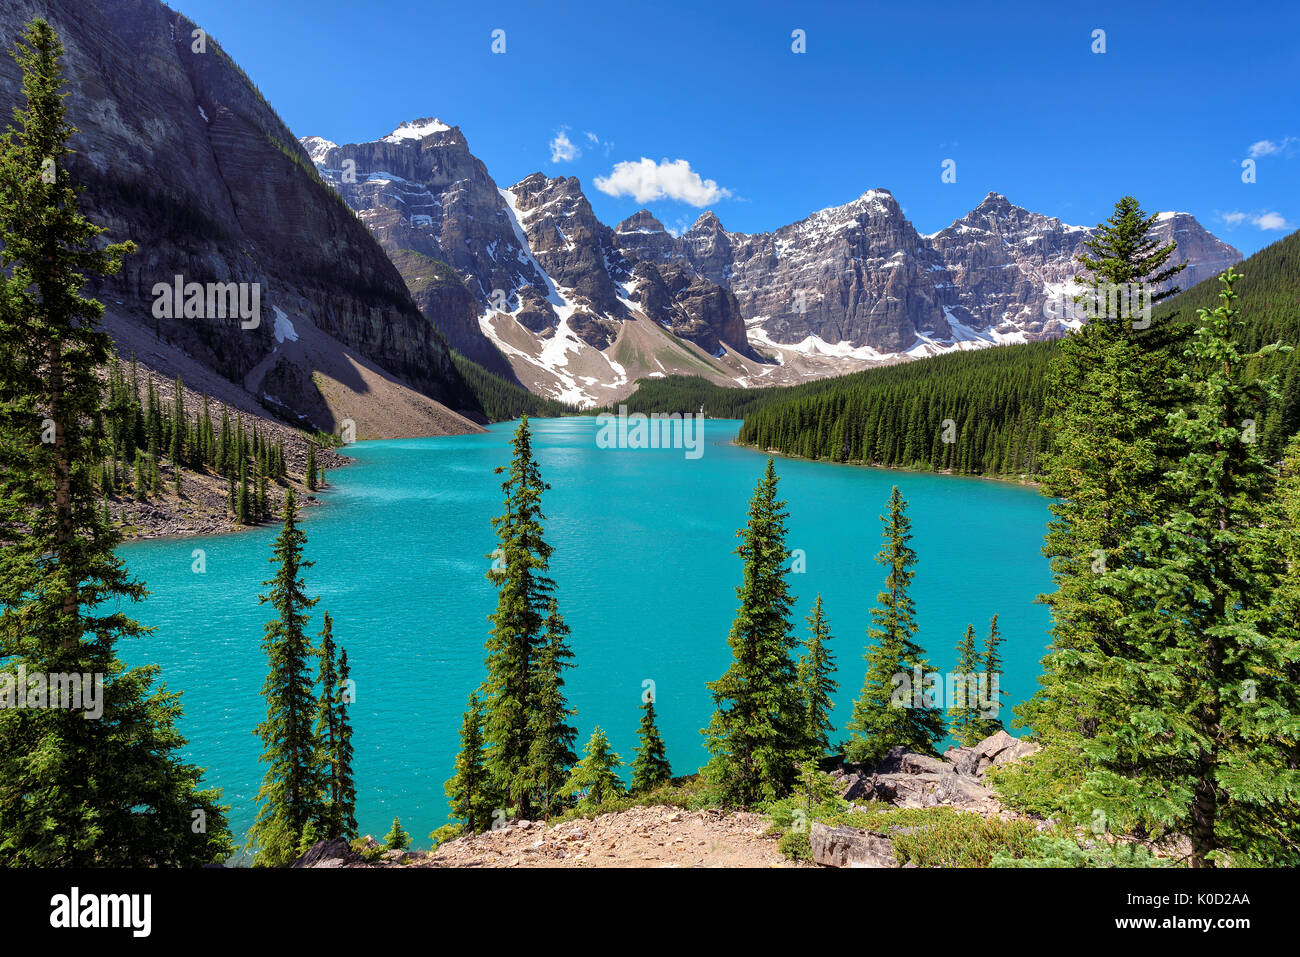 Moraine Lake - Famous place in Canadian Rockies. - Stock Image